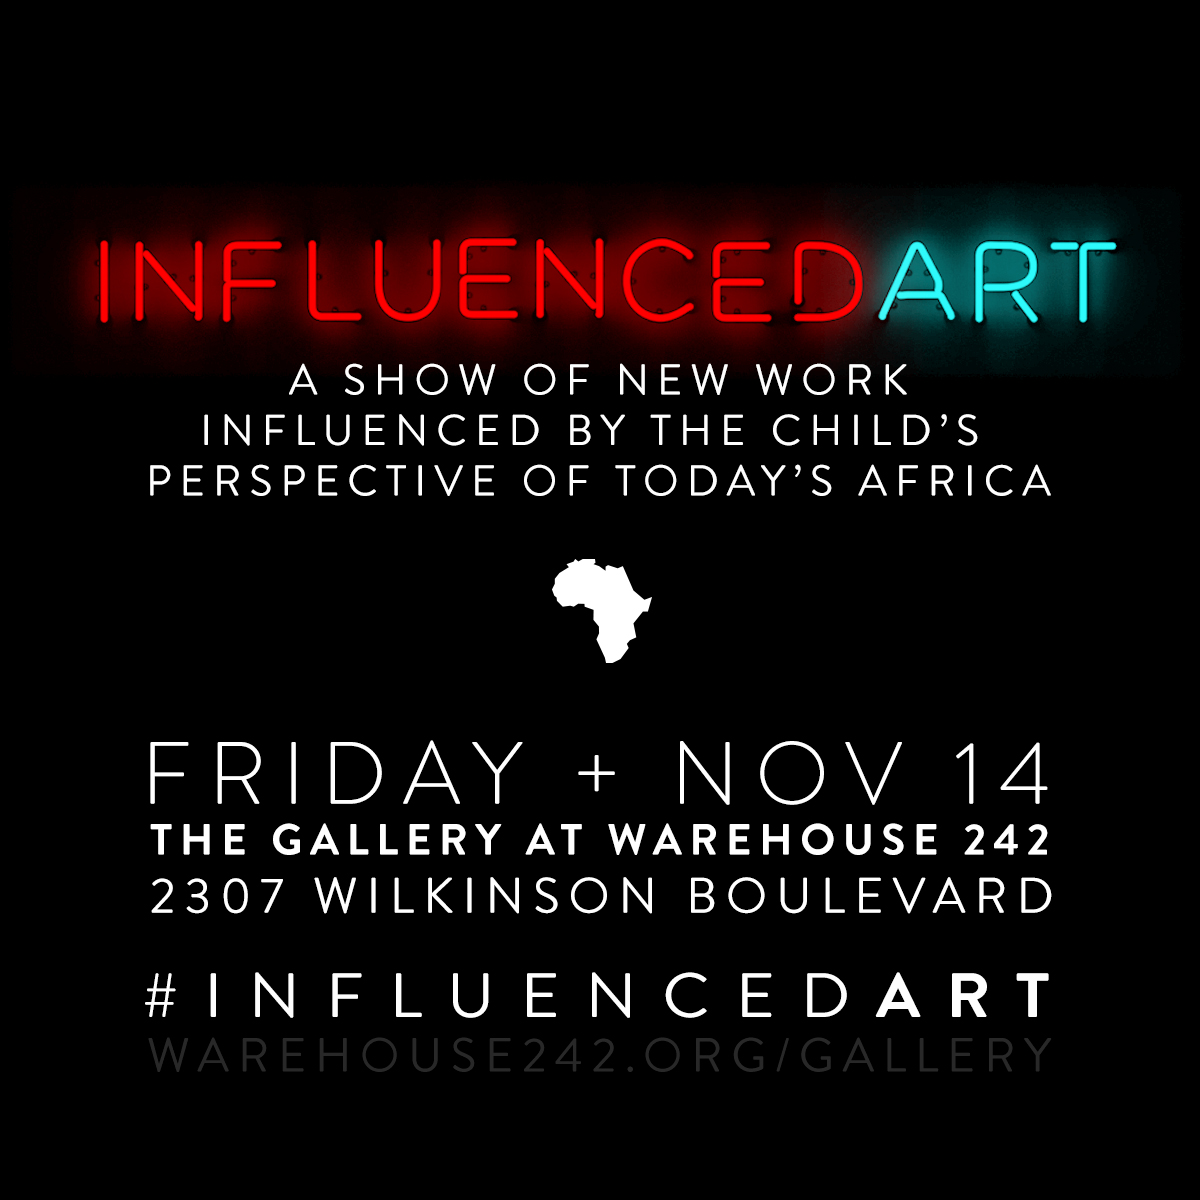 Influenced Art at Warehouse242 - November 2013 - January 2014The Gallery at Warehouses242 presents Influenced Art, a thought-provoking exhibition and collaboration between artists across the globe, local children of Charlotte, NC, and Rwandan artifacts. With this project comes the hope of inspiring new learning opportunities for people of all races, ages, and backgrounds. For more insight on the experience, visit Thomas's collaboration page.